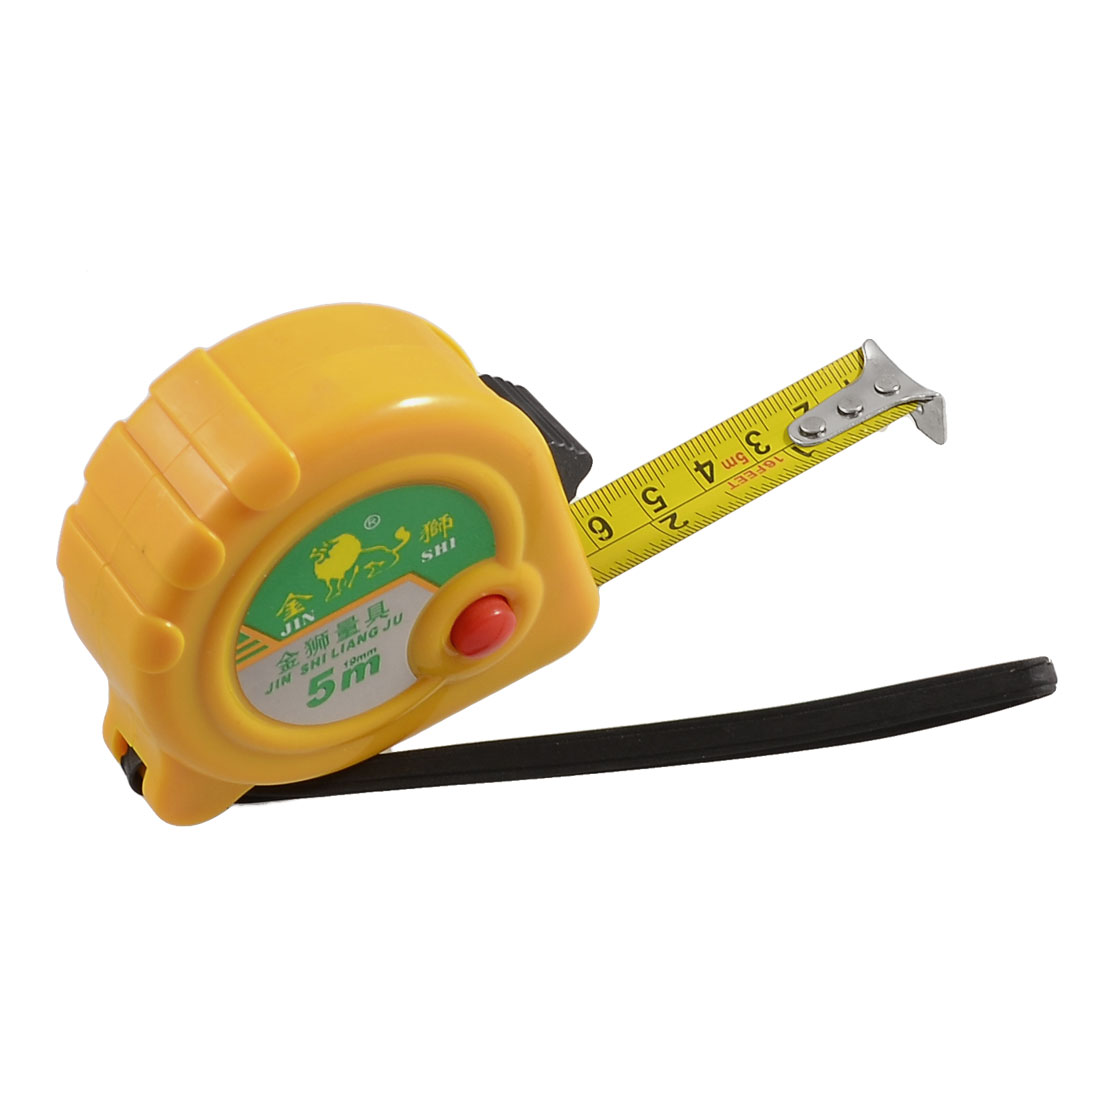 5-Meters-16-Ft-Length-Locking-Measuring-Tape-Ruller-w-Hand-Strap